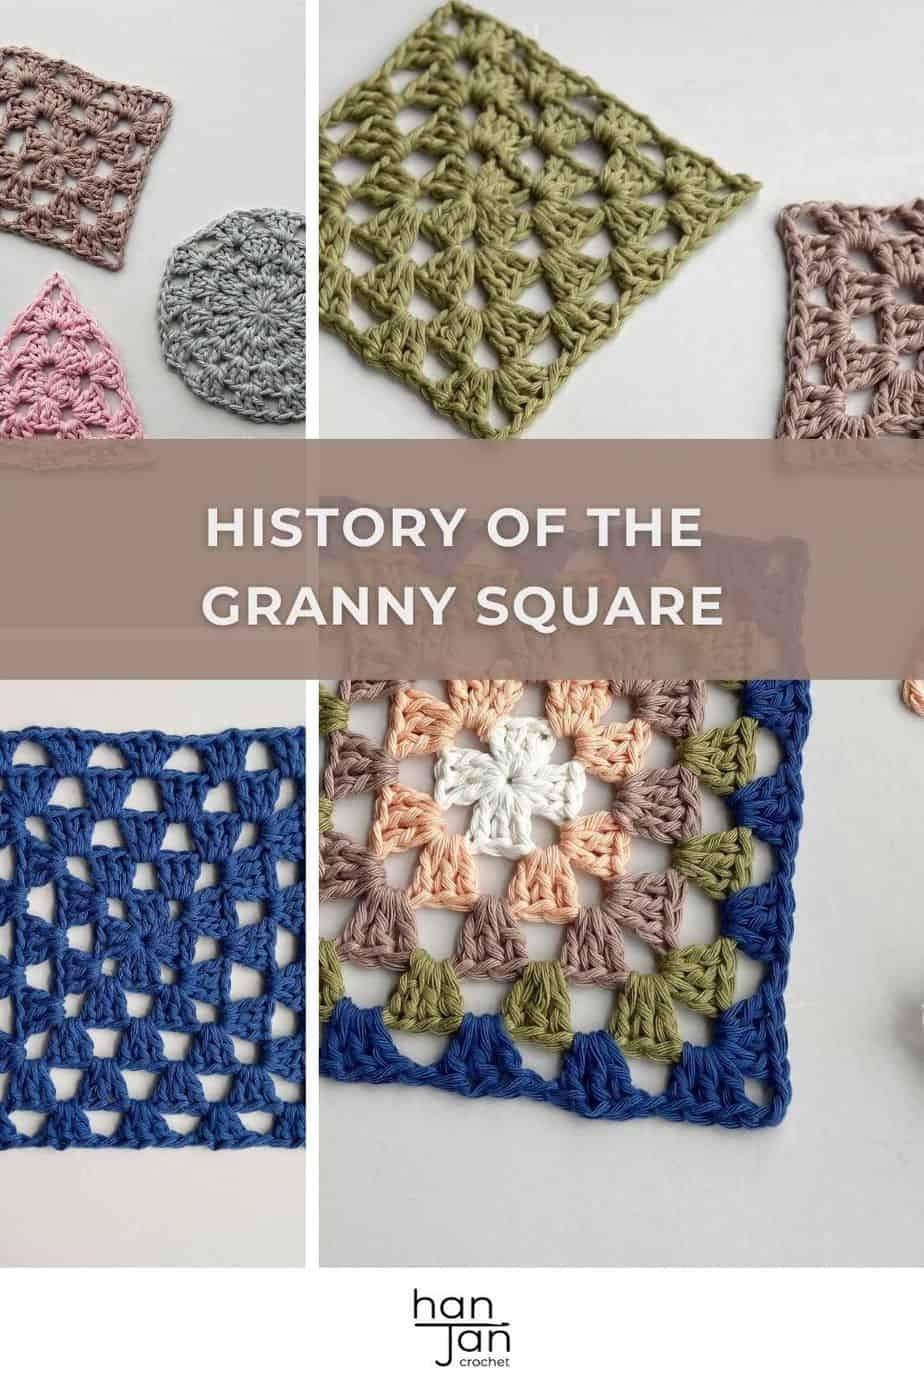 3 images showing different types of granny squares, triangle, circle and square